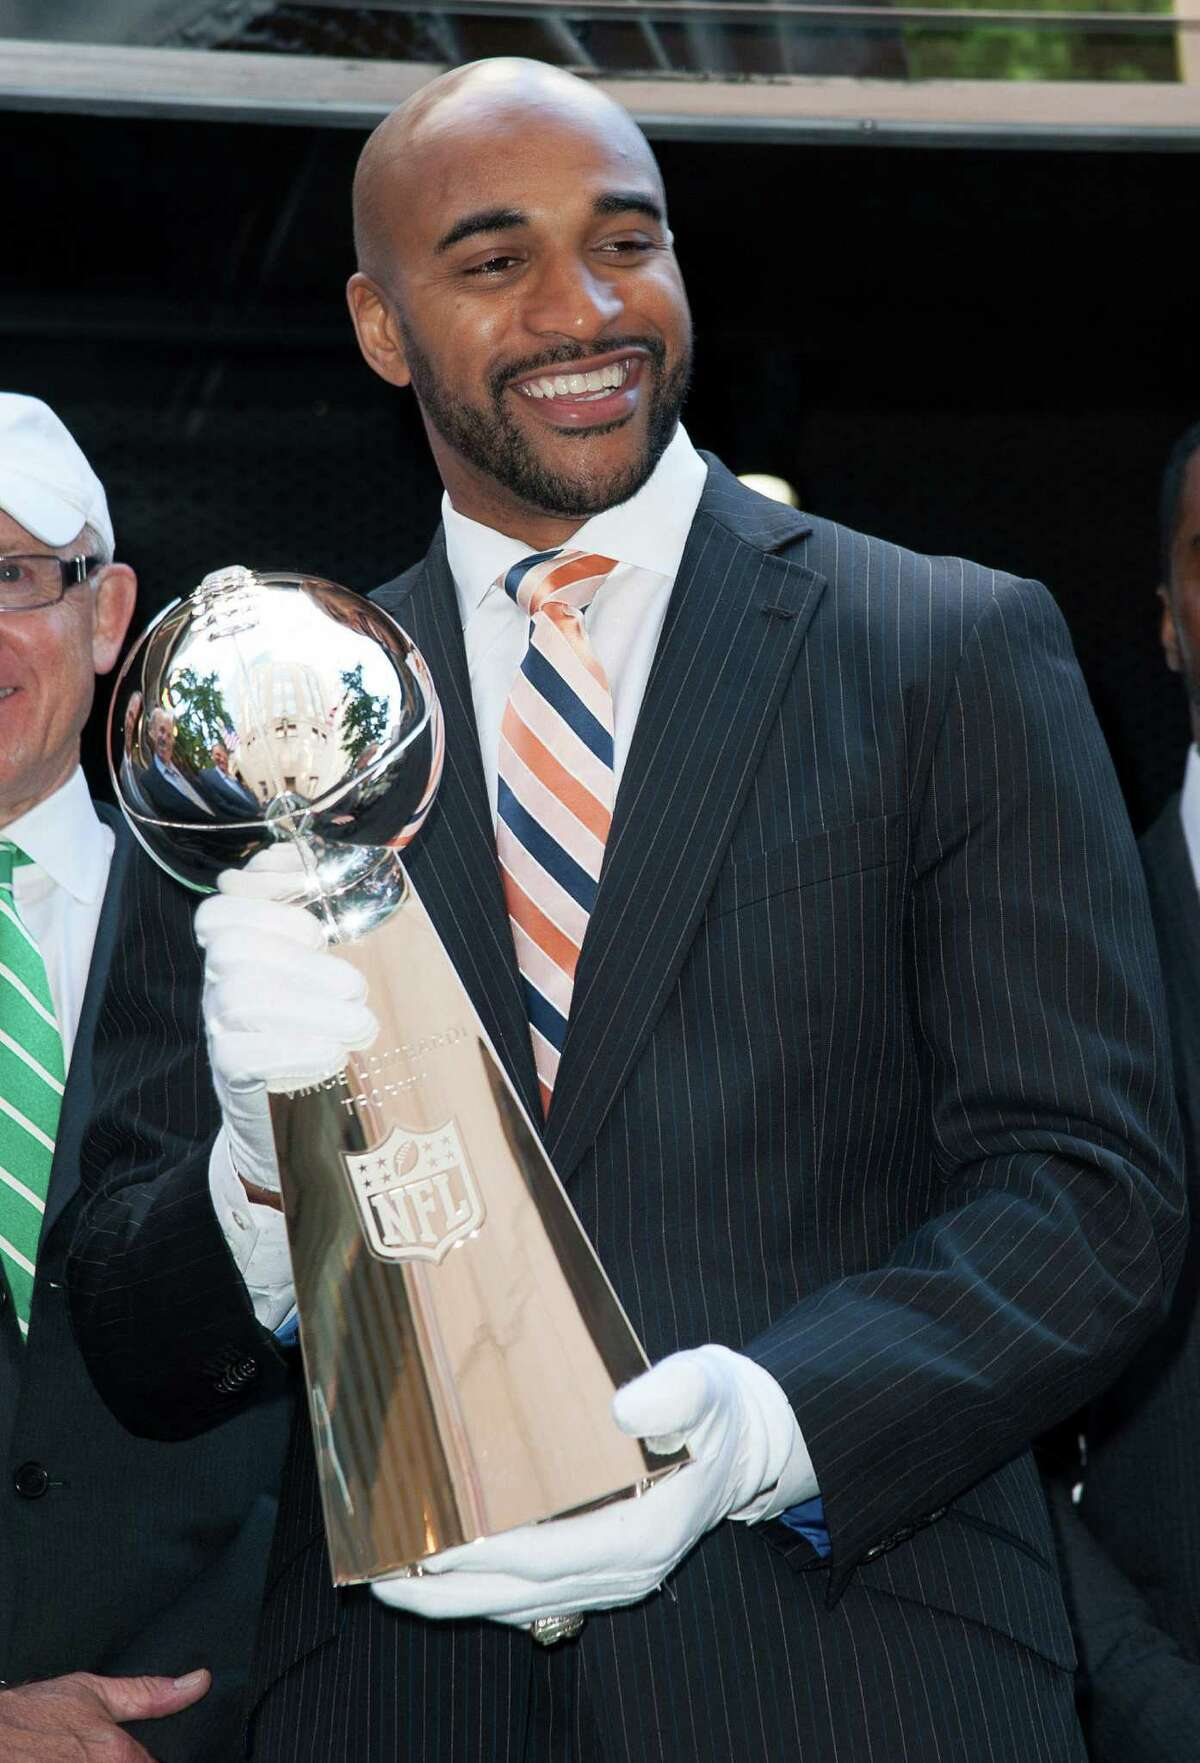 """NEW YORK, NY - SEPTEMBER 04: David Tyree carries the Vince Lombardi trophy during the """"Join The Huddle"""" Road To Super Bowl XLVIII Kick Off Mobile Tour at Tiffany & Co. on September 4, 2013 in New York City. (Photo by Dave Kotinsky/Getty Images)"""